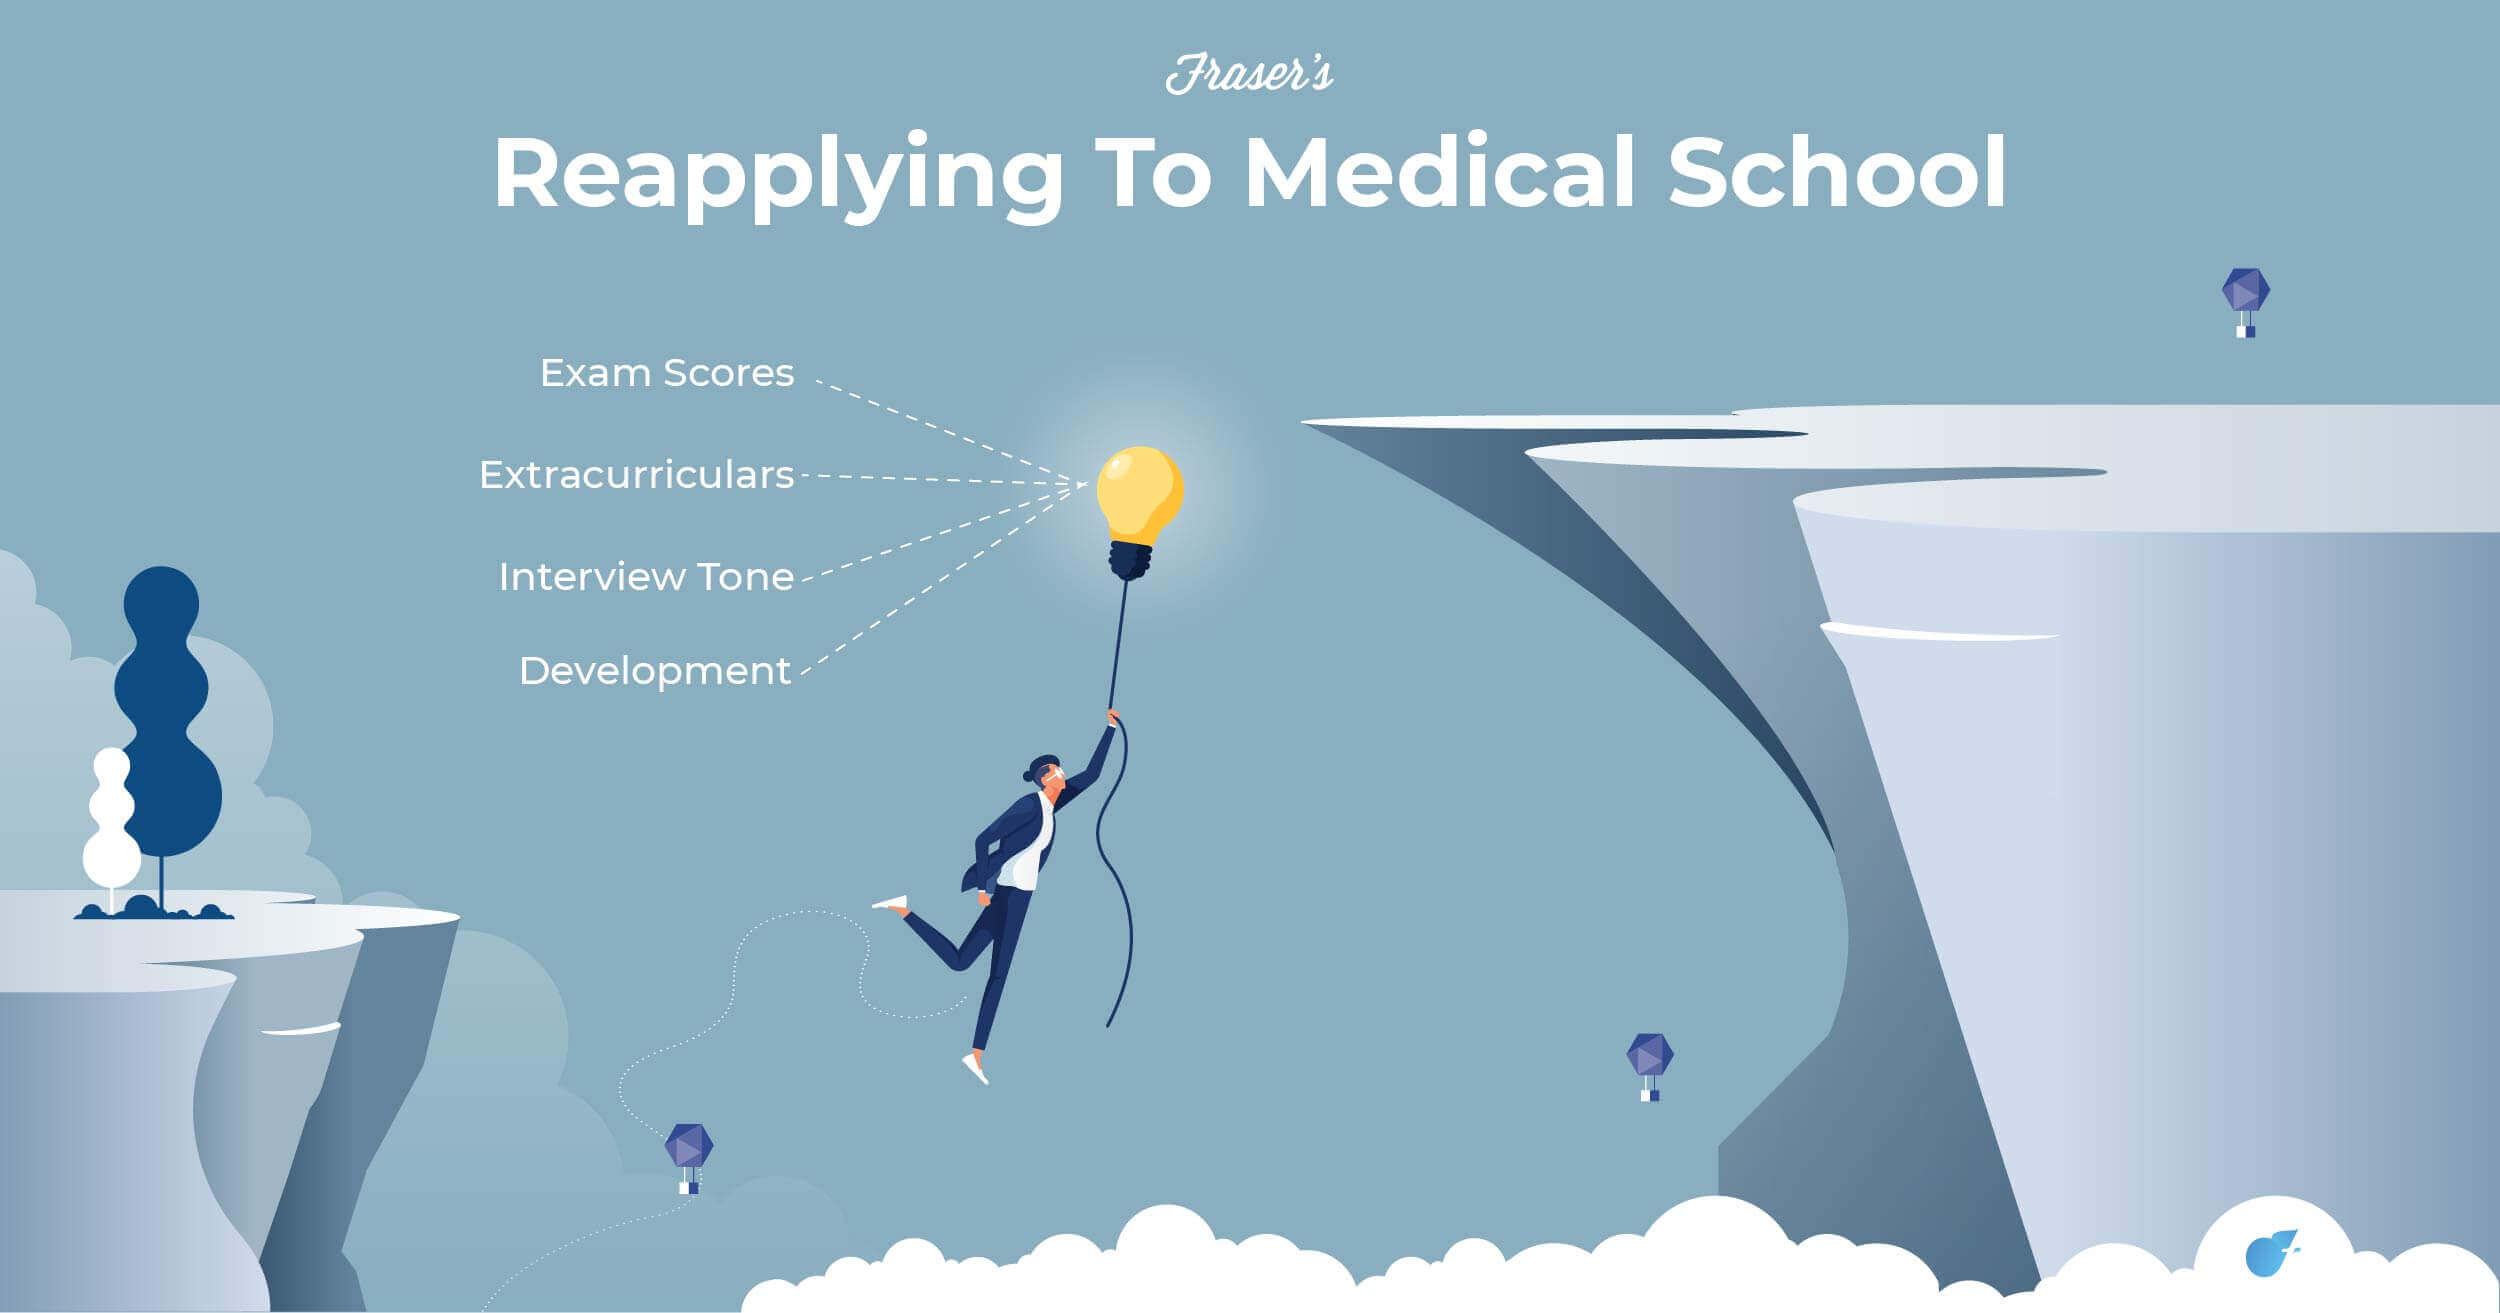 Reapplying To Medical School: 4 Tips To Overcome Med School Rejection featured image